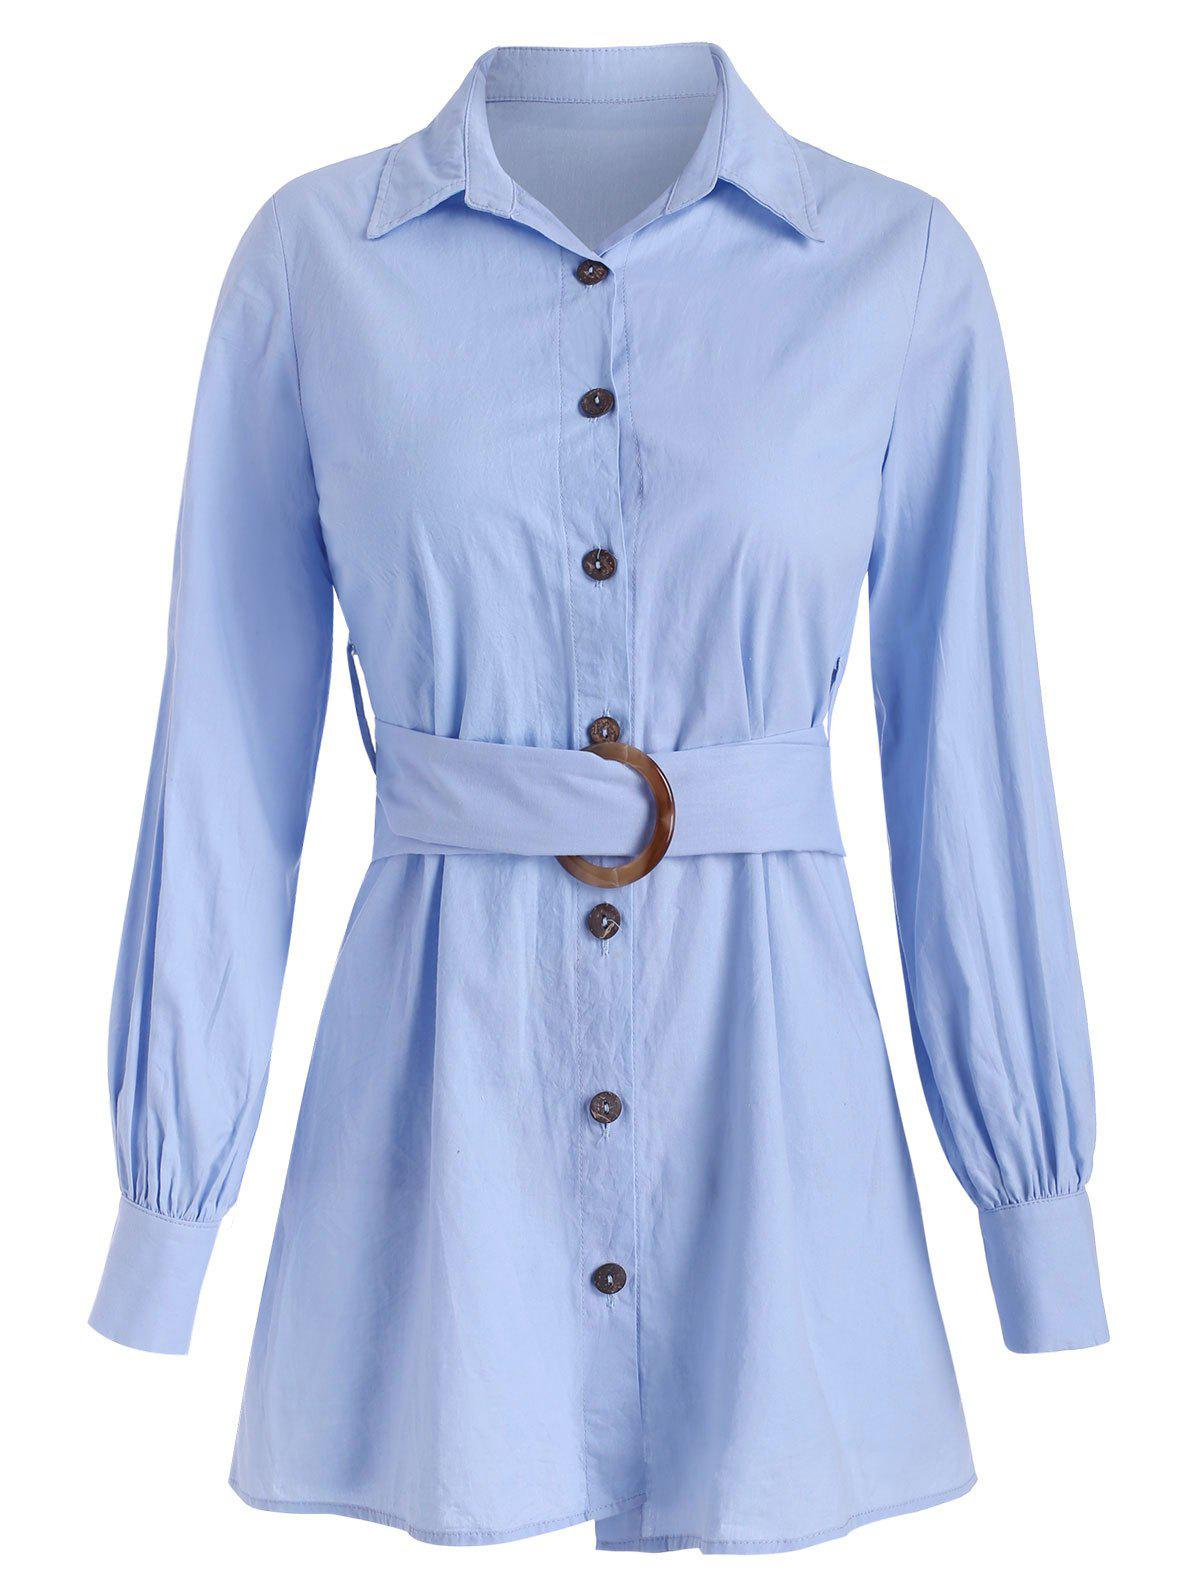 Sale Button Up Shirt with O-ring Belt